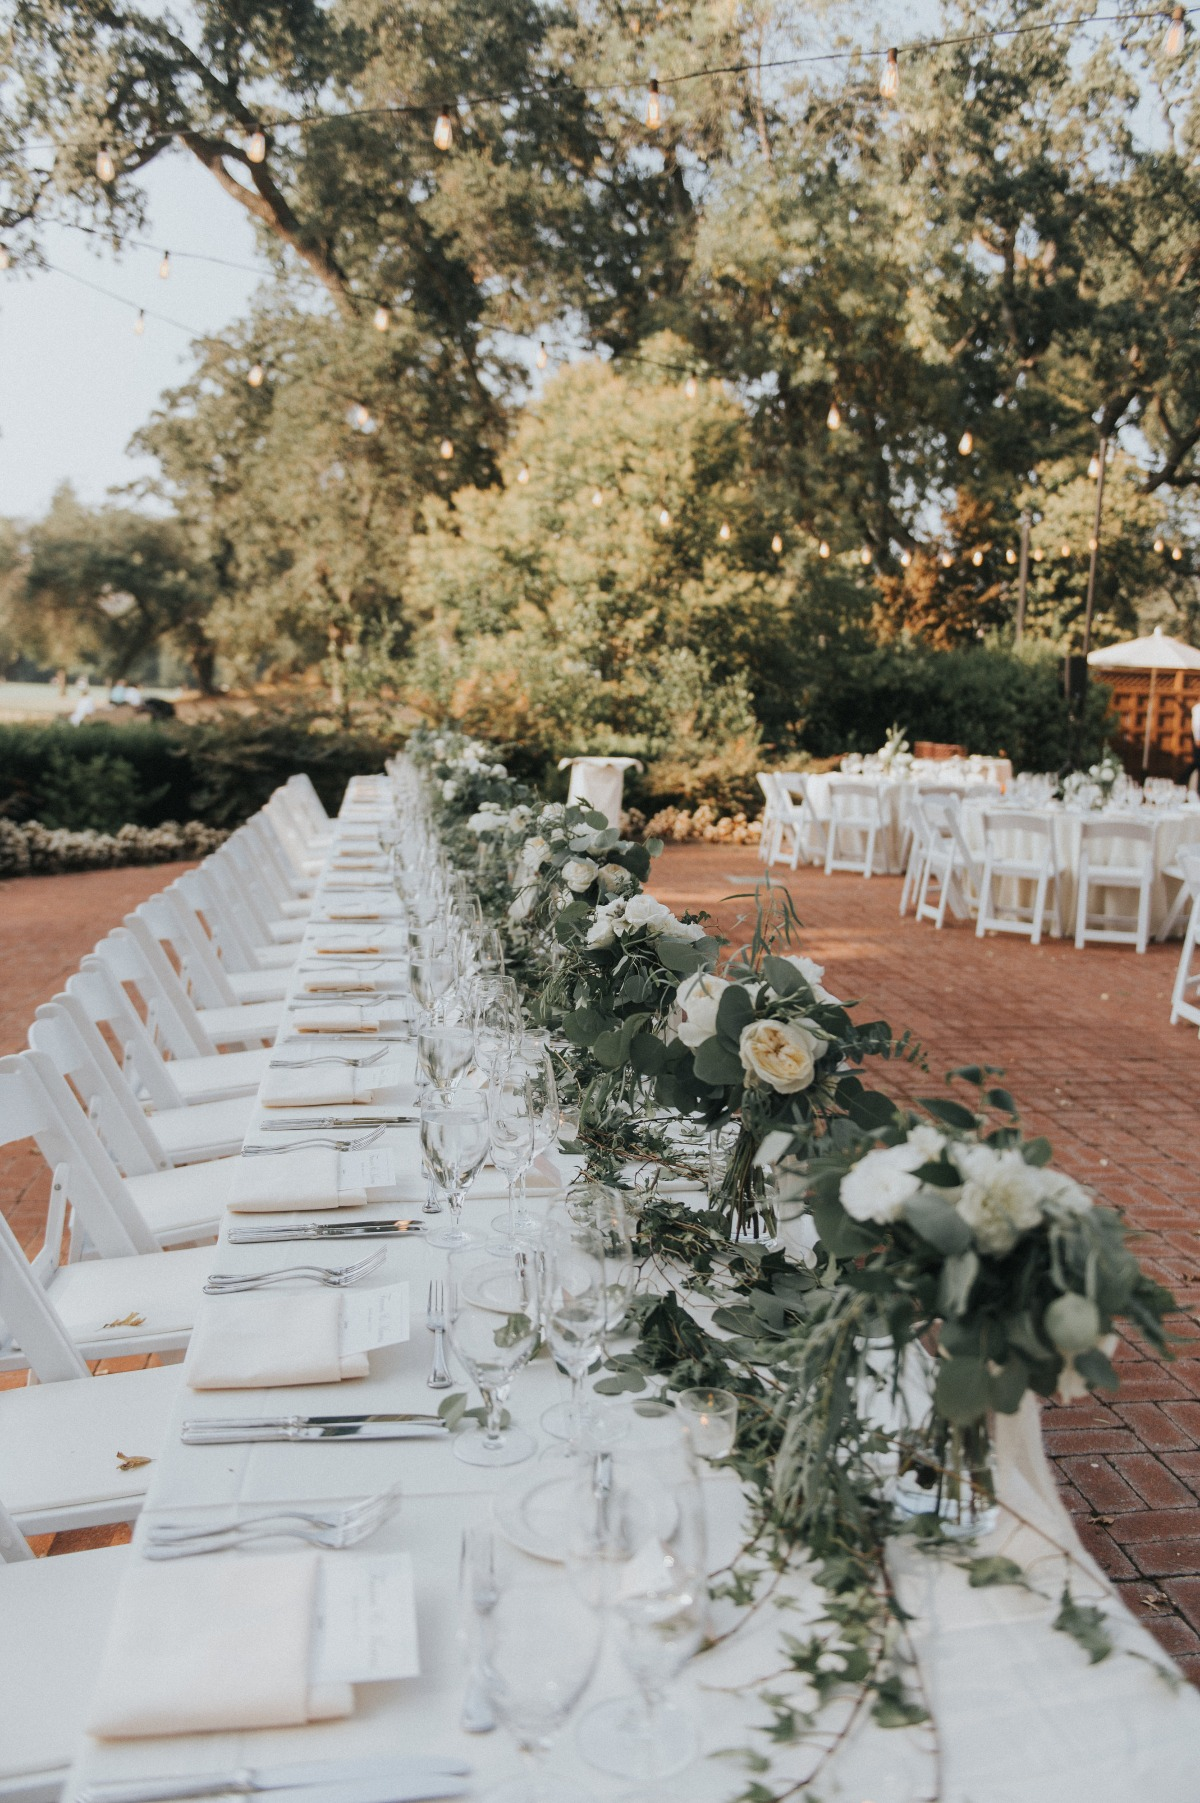 wedding party family style seating with white and greenery floral decor